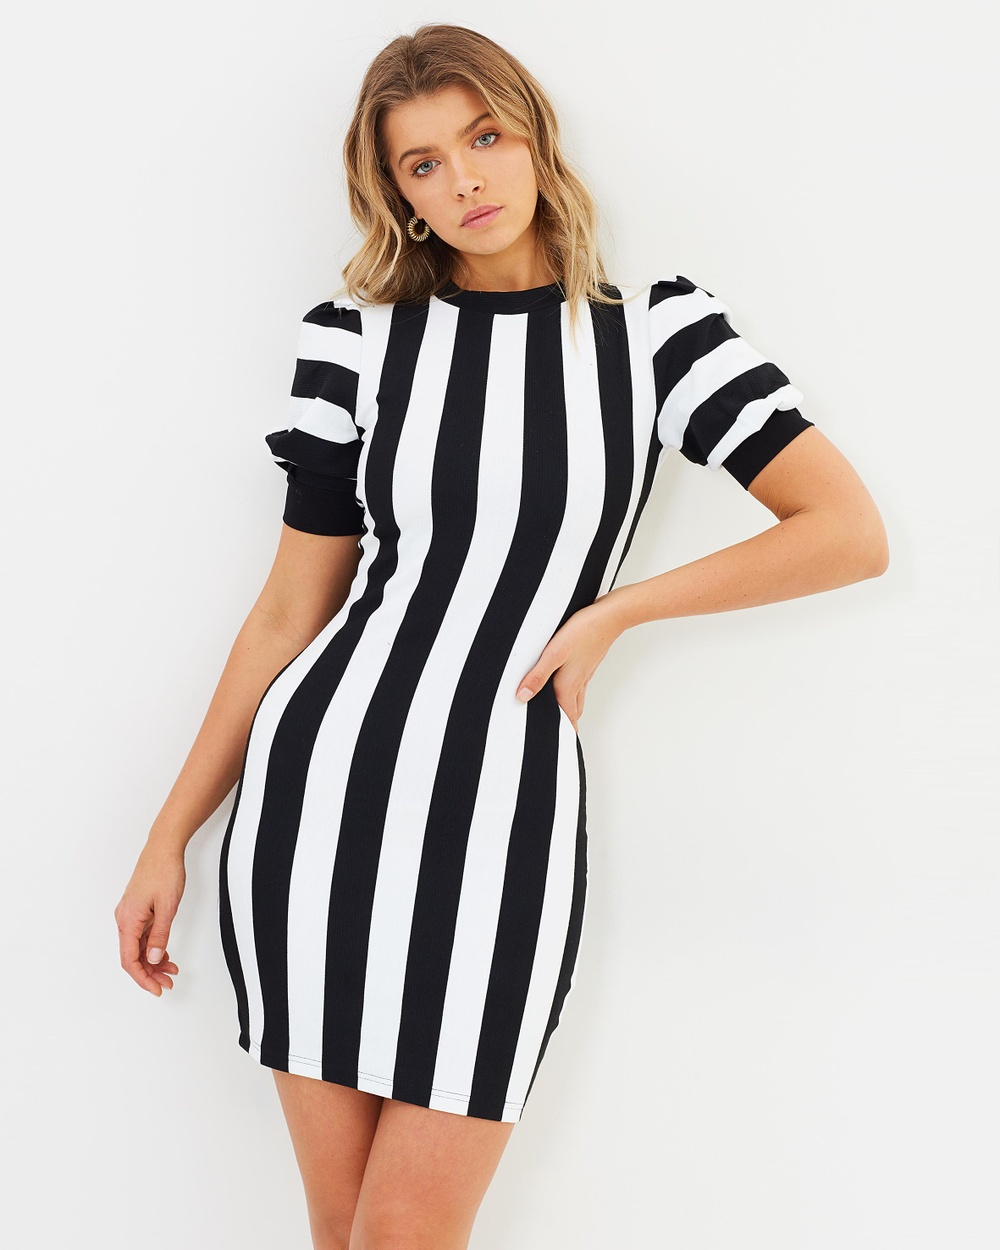 Atmos & Here ICONIC EXCLUSIVE Sally Mini Dress Bodycon Dresses Stripe ICONIC EXCLUSIVE Sally Mini Dress